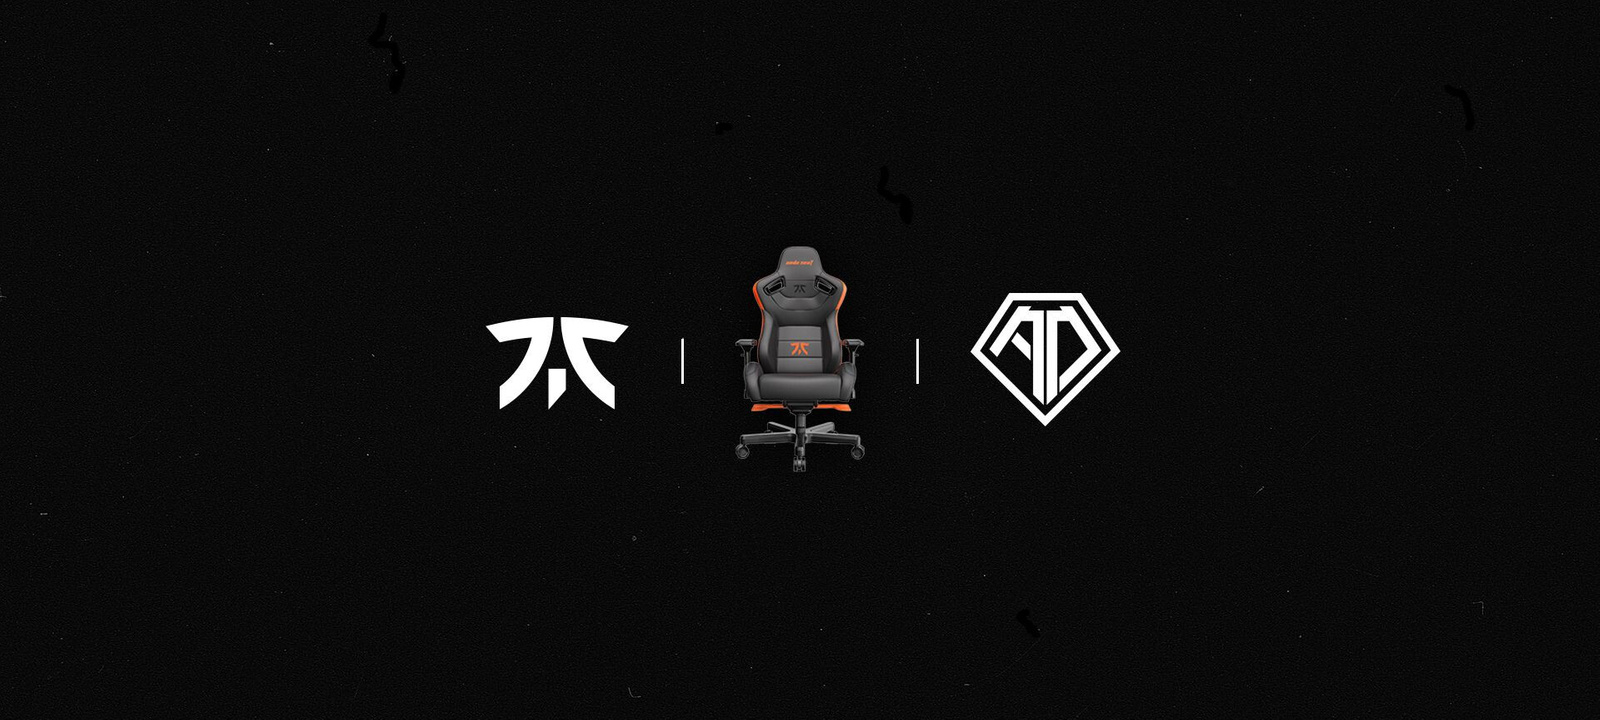 AndaSeat signs as exclusive gaming chair partner of Fnatic